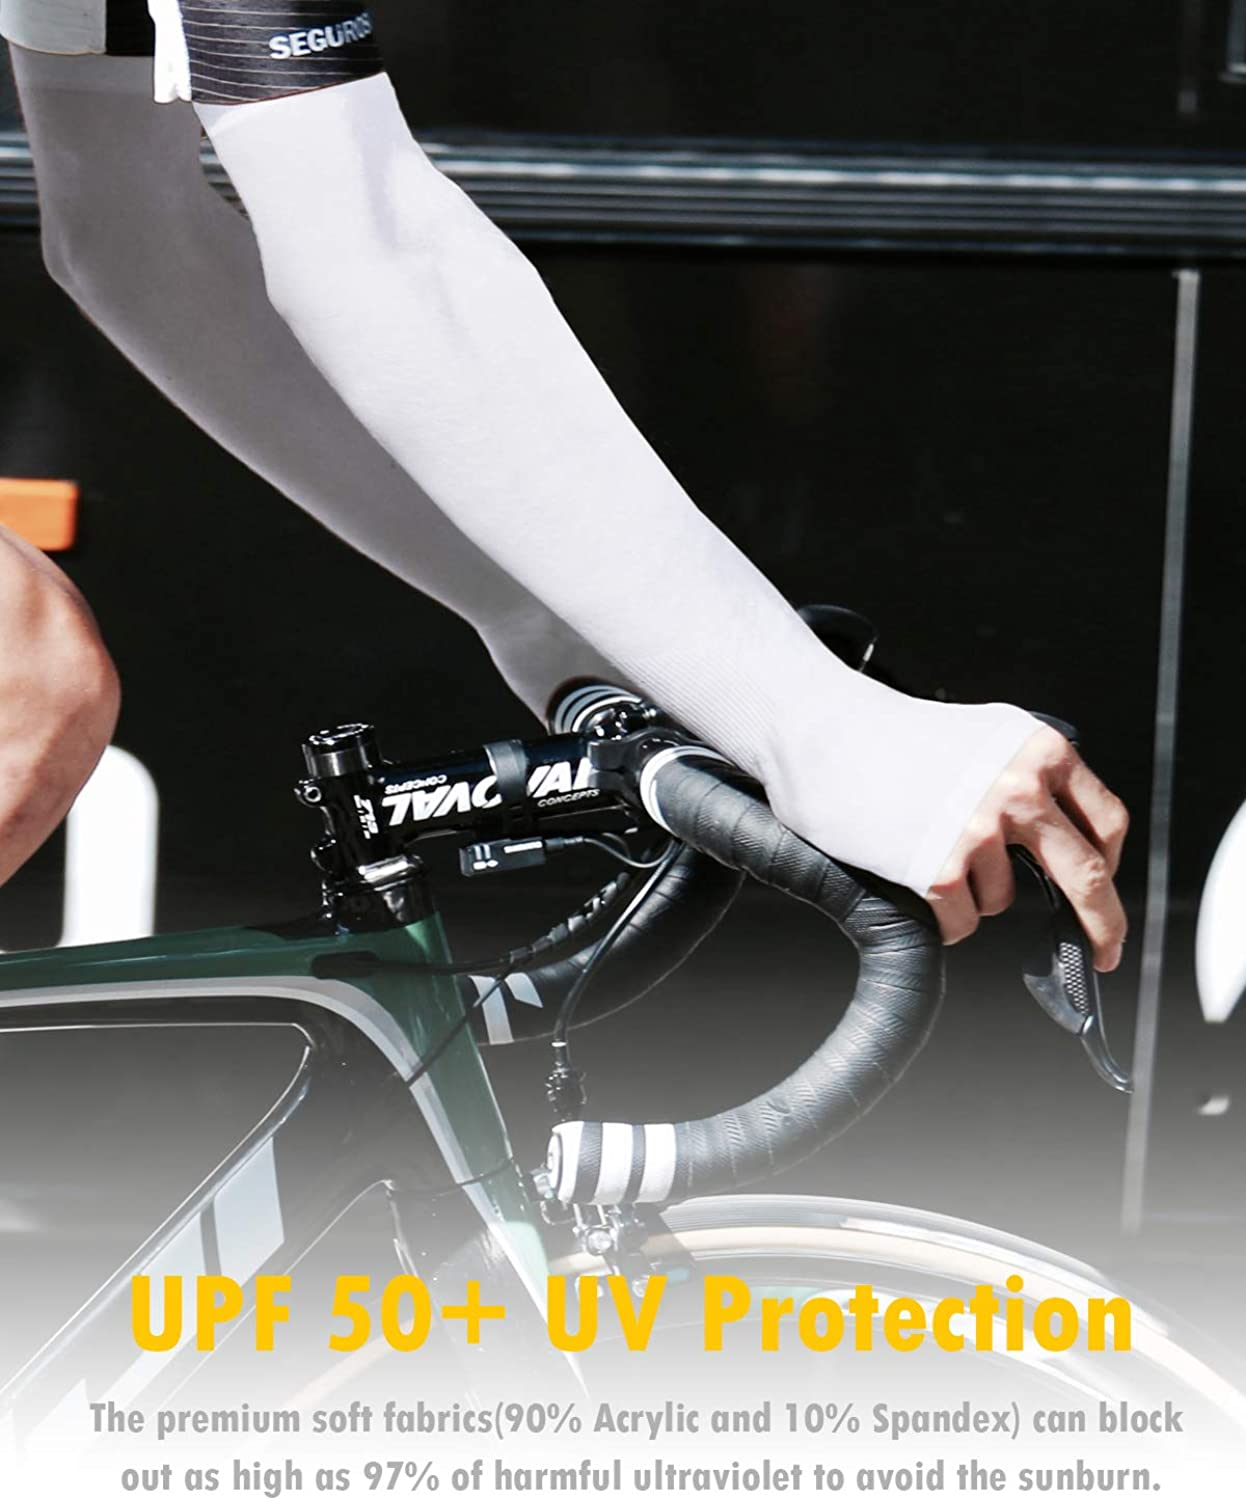 UPF 50 UV Sun Protection Cooling Sleeves to Cover Arms Arm Sleeves for Women Men